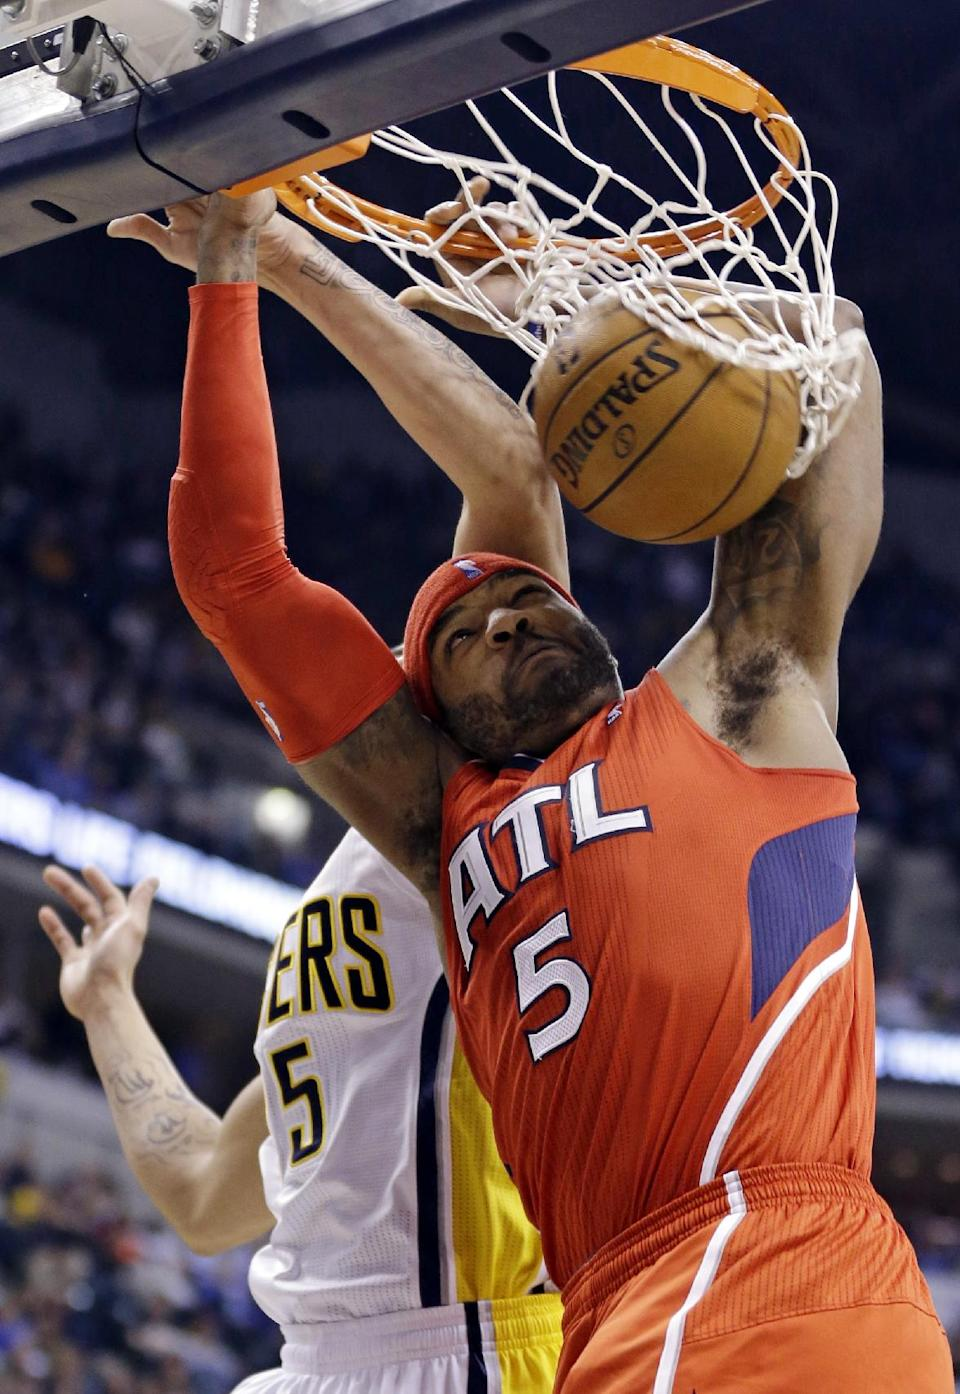 Atlanta Hawks forward Josh Smith (5) dunks under Indiana Pacers forward Gerald Green in the first half of Game 2 of a first-round NBA basketball playoff series in Indianapolis, Wednesday, April 24, 2013. (AP Photo/Michael Conroy)